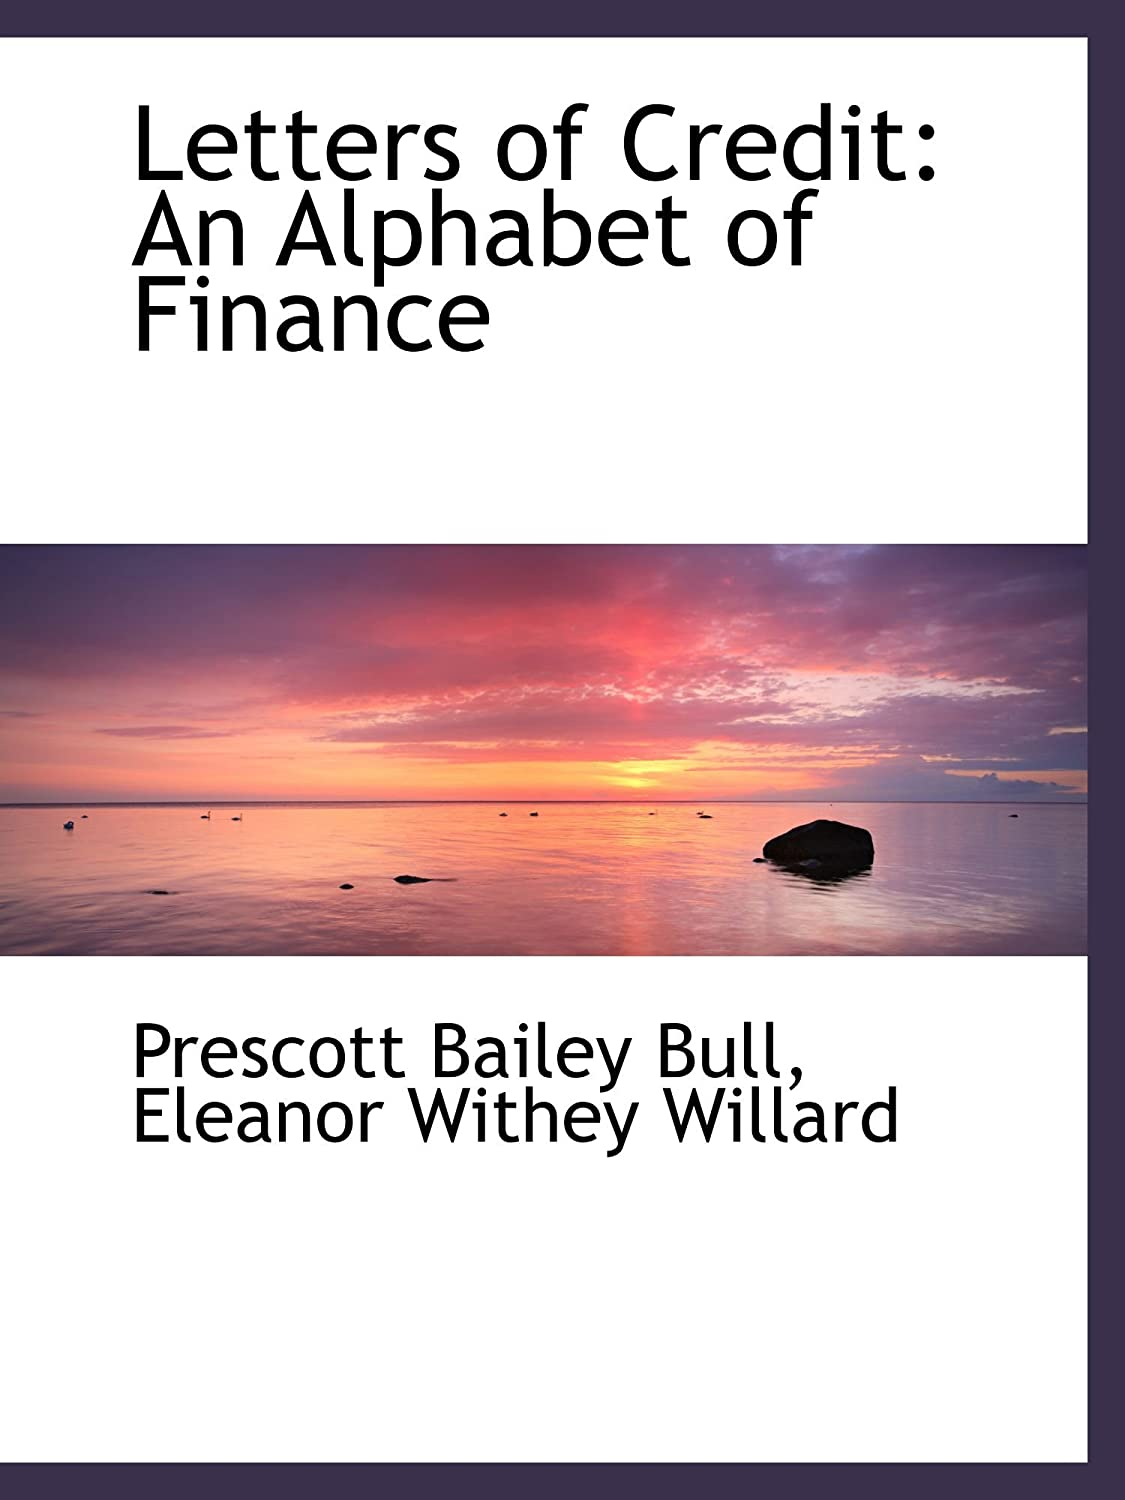 Letters of Credit: An Alphabet of Finance Prescott Bailey Bull